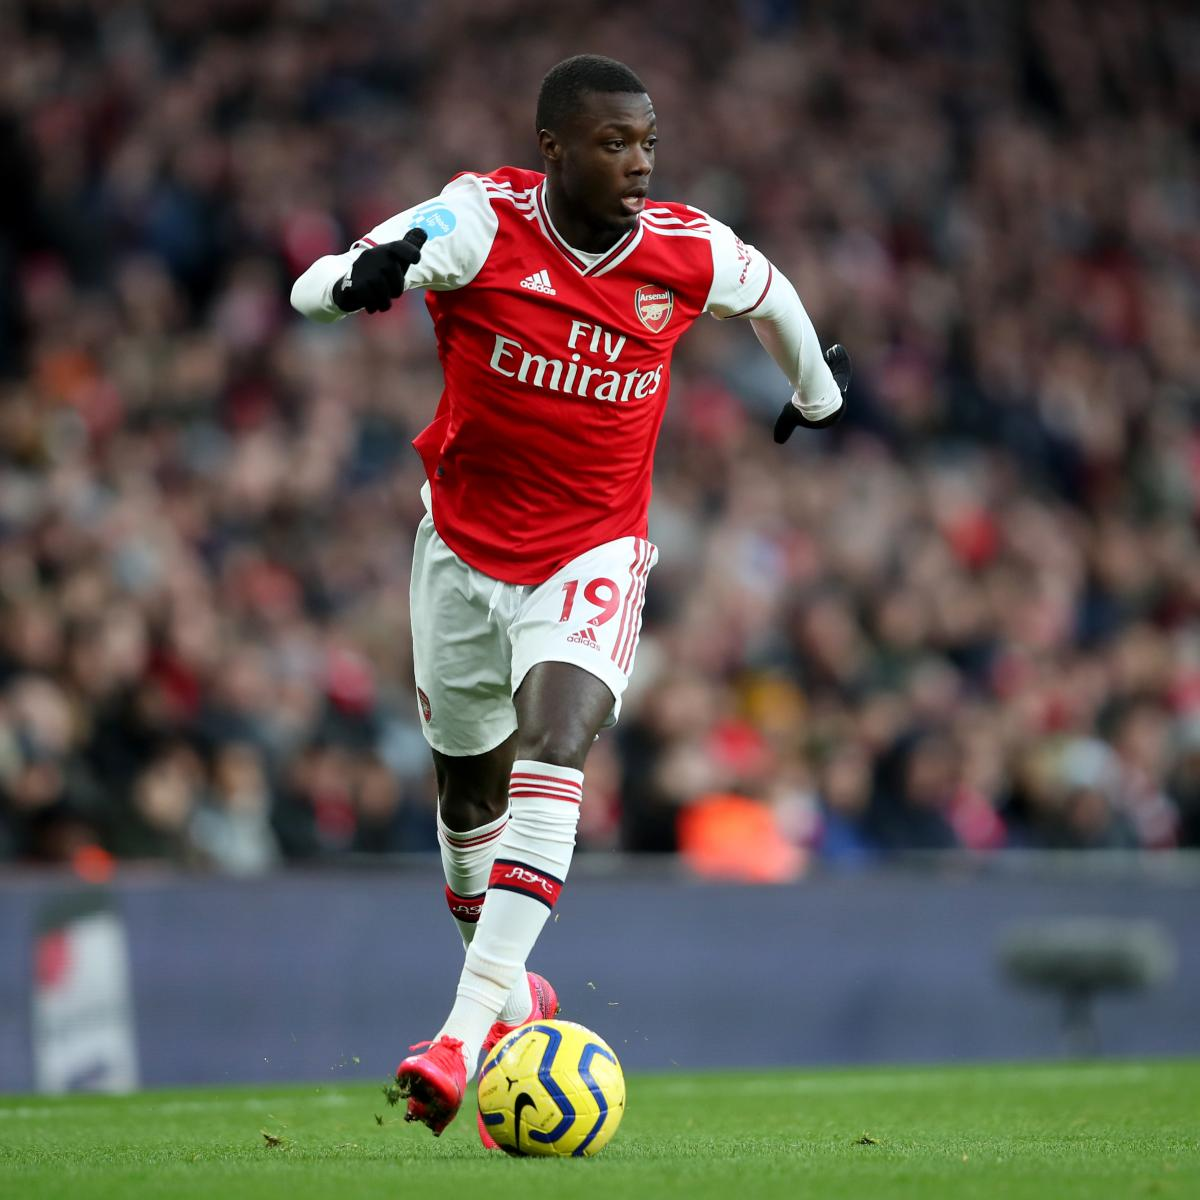 Alexandre Lacazette: Nicolas Pepe Gaining Confidence in World's 'Hardest League'